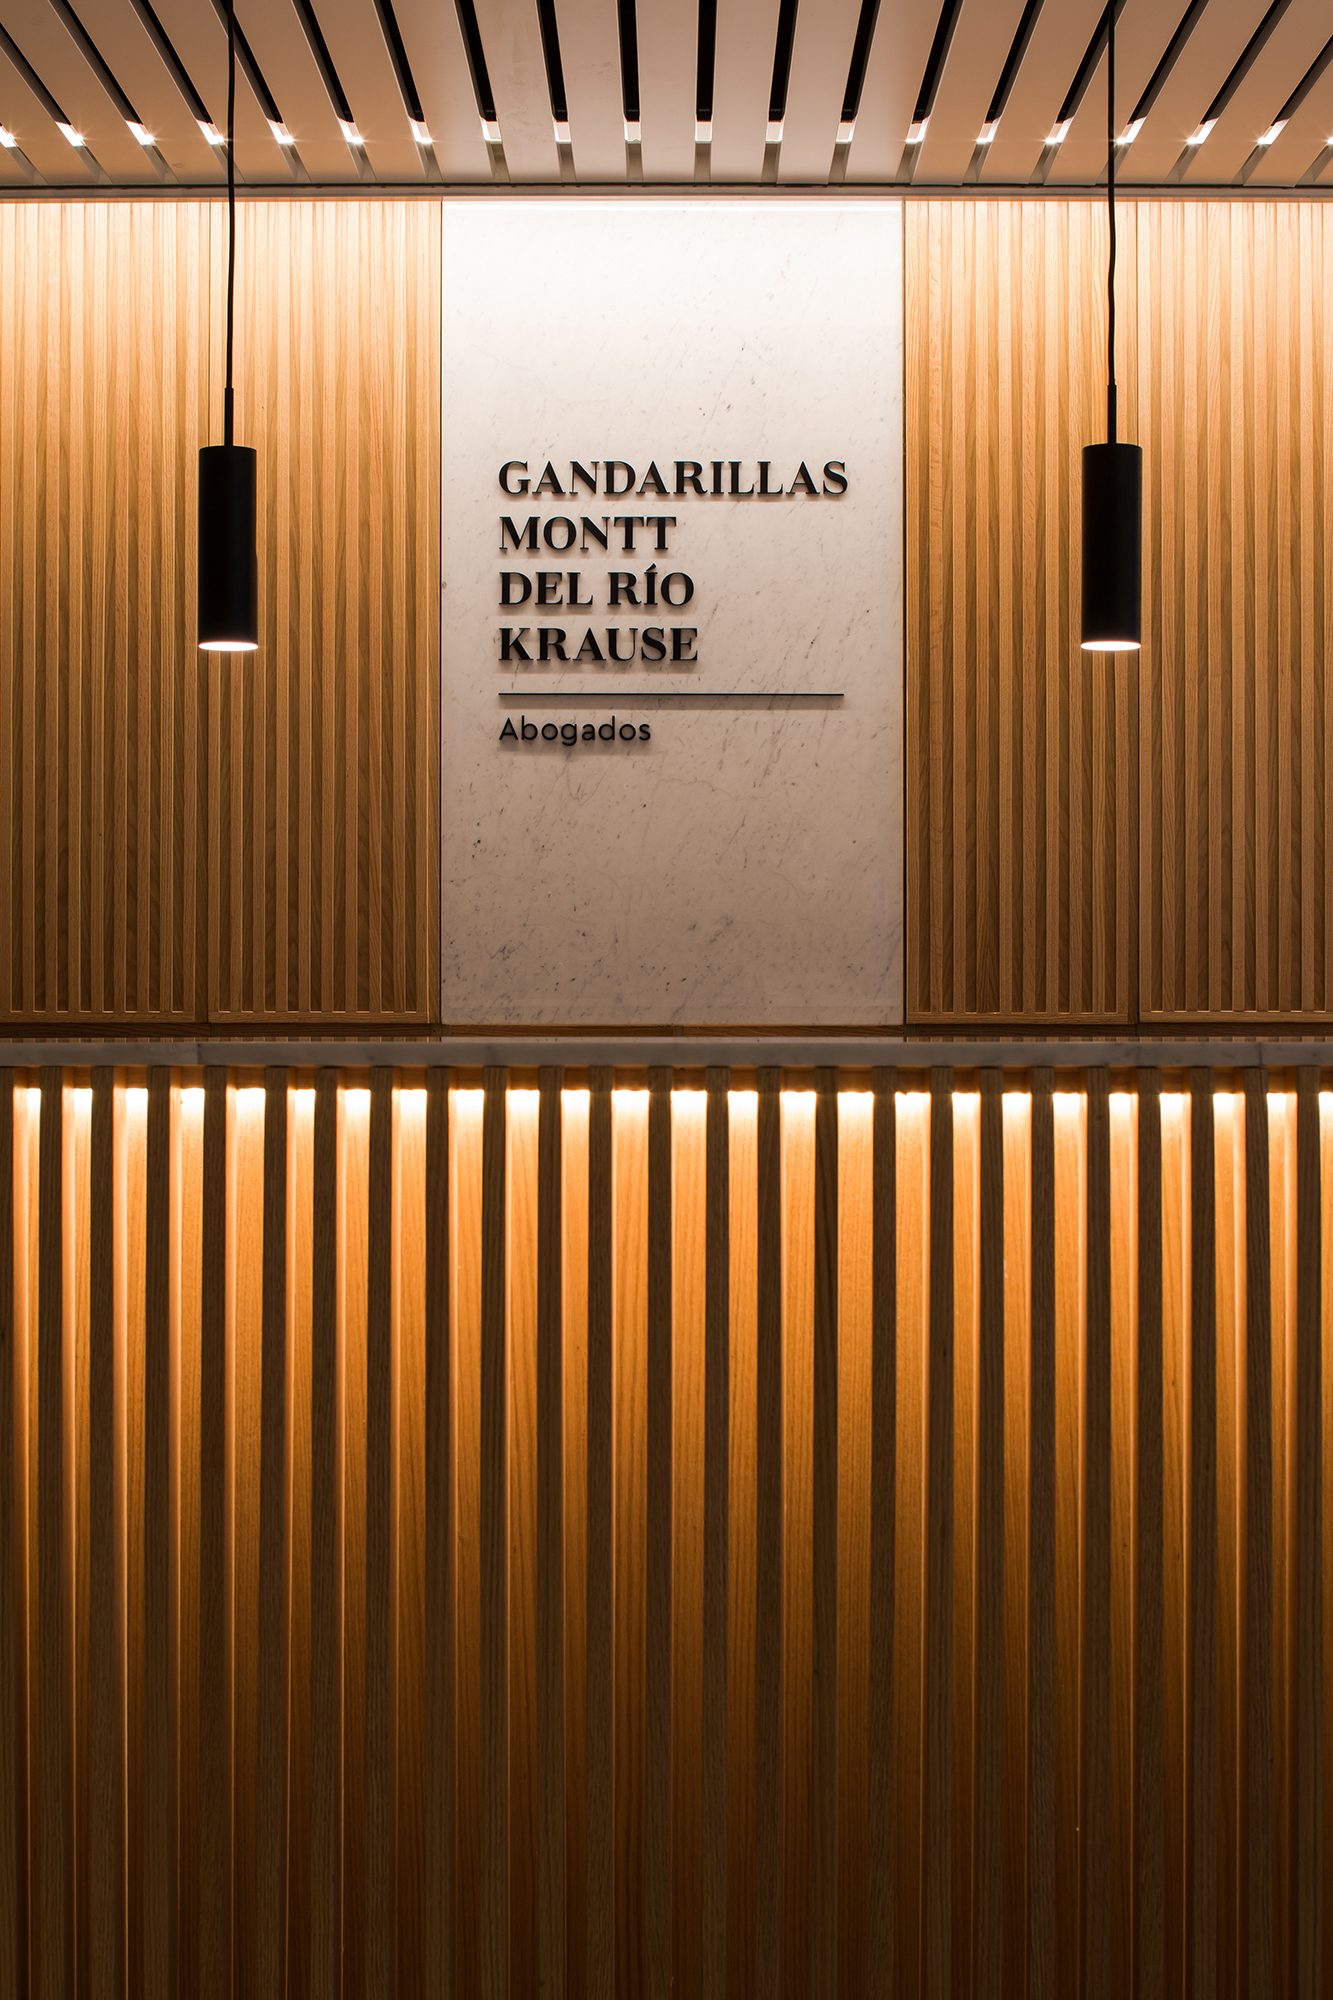 GMDK Abogados by Aguiló+Pedraza